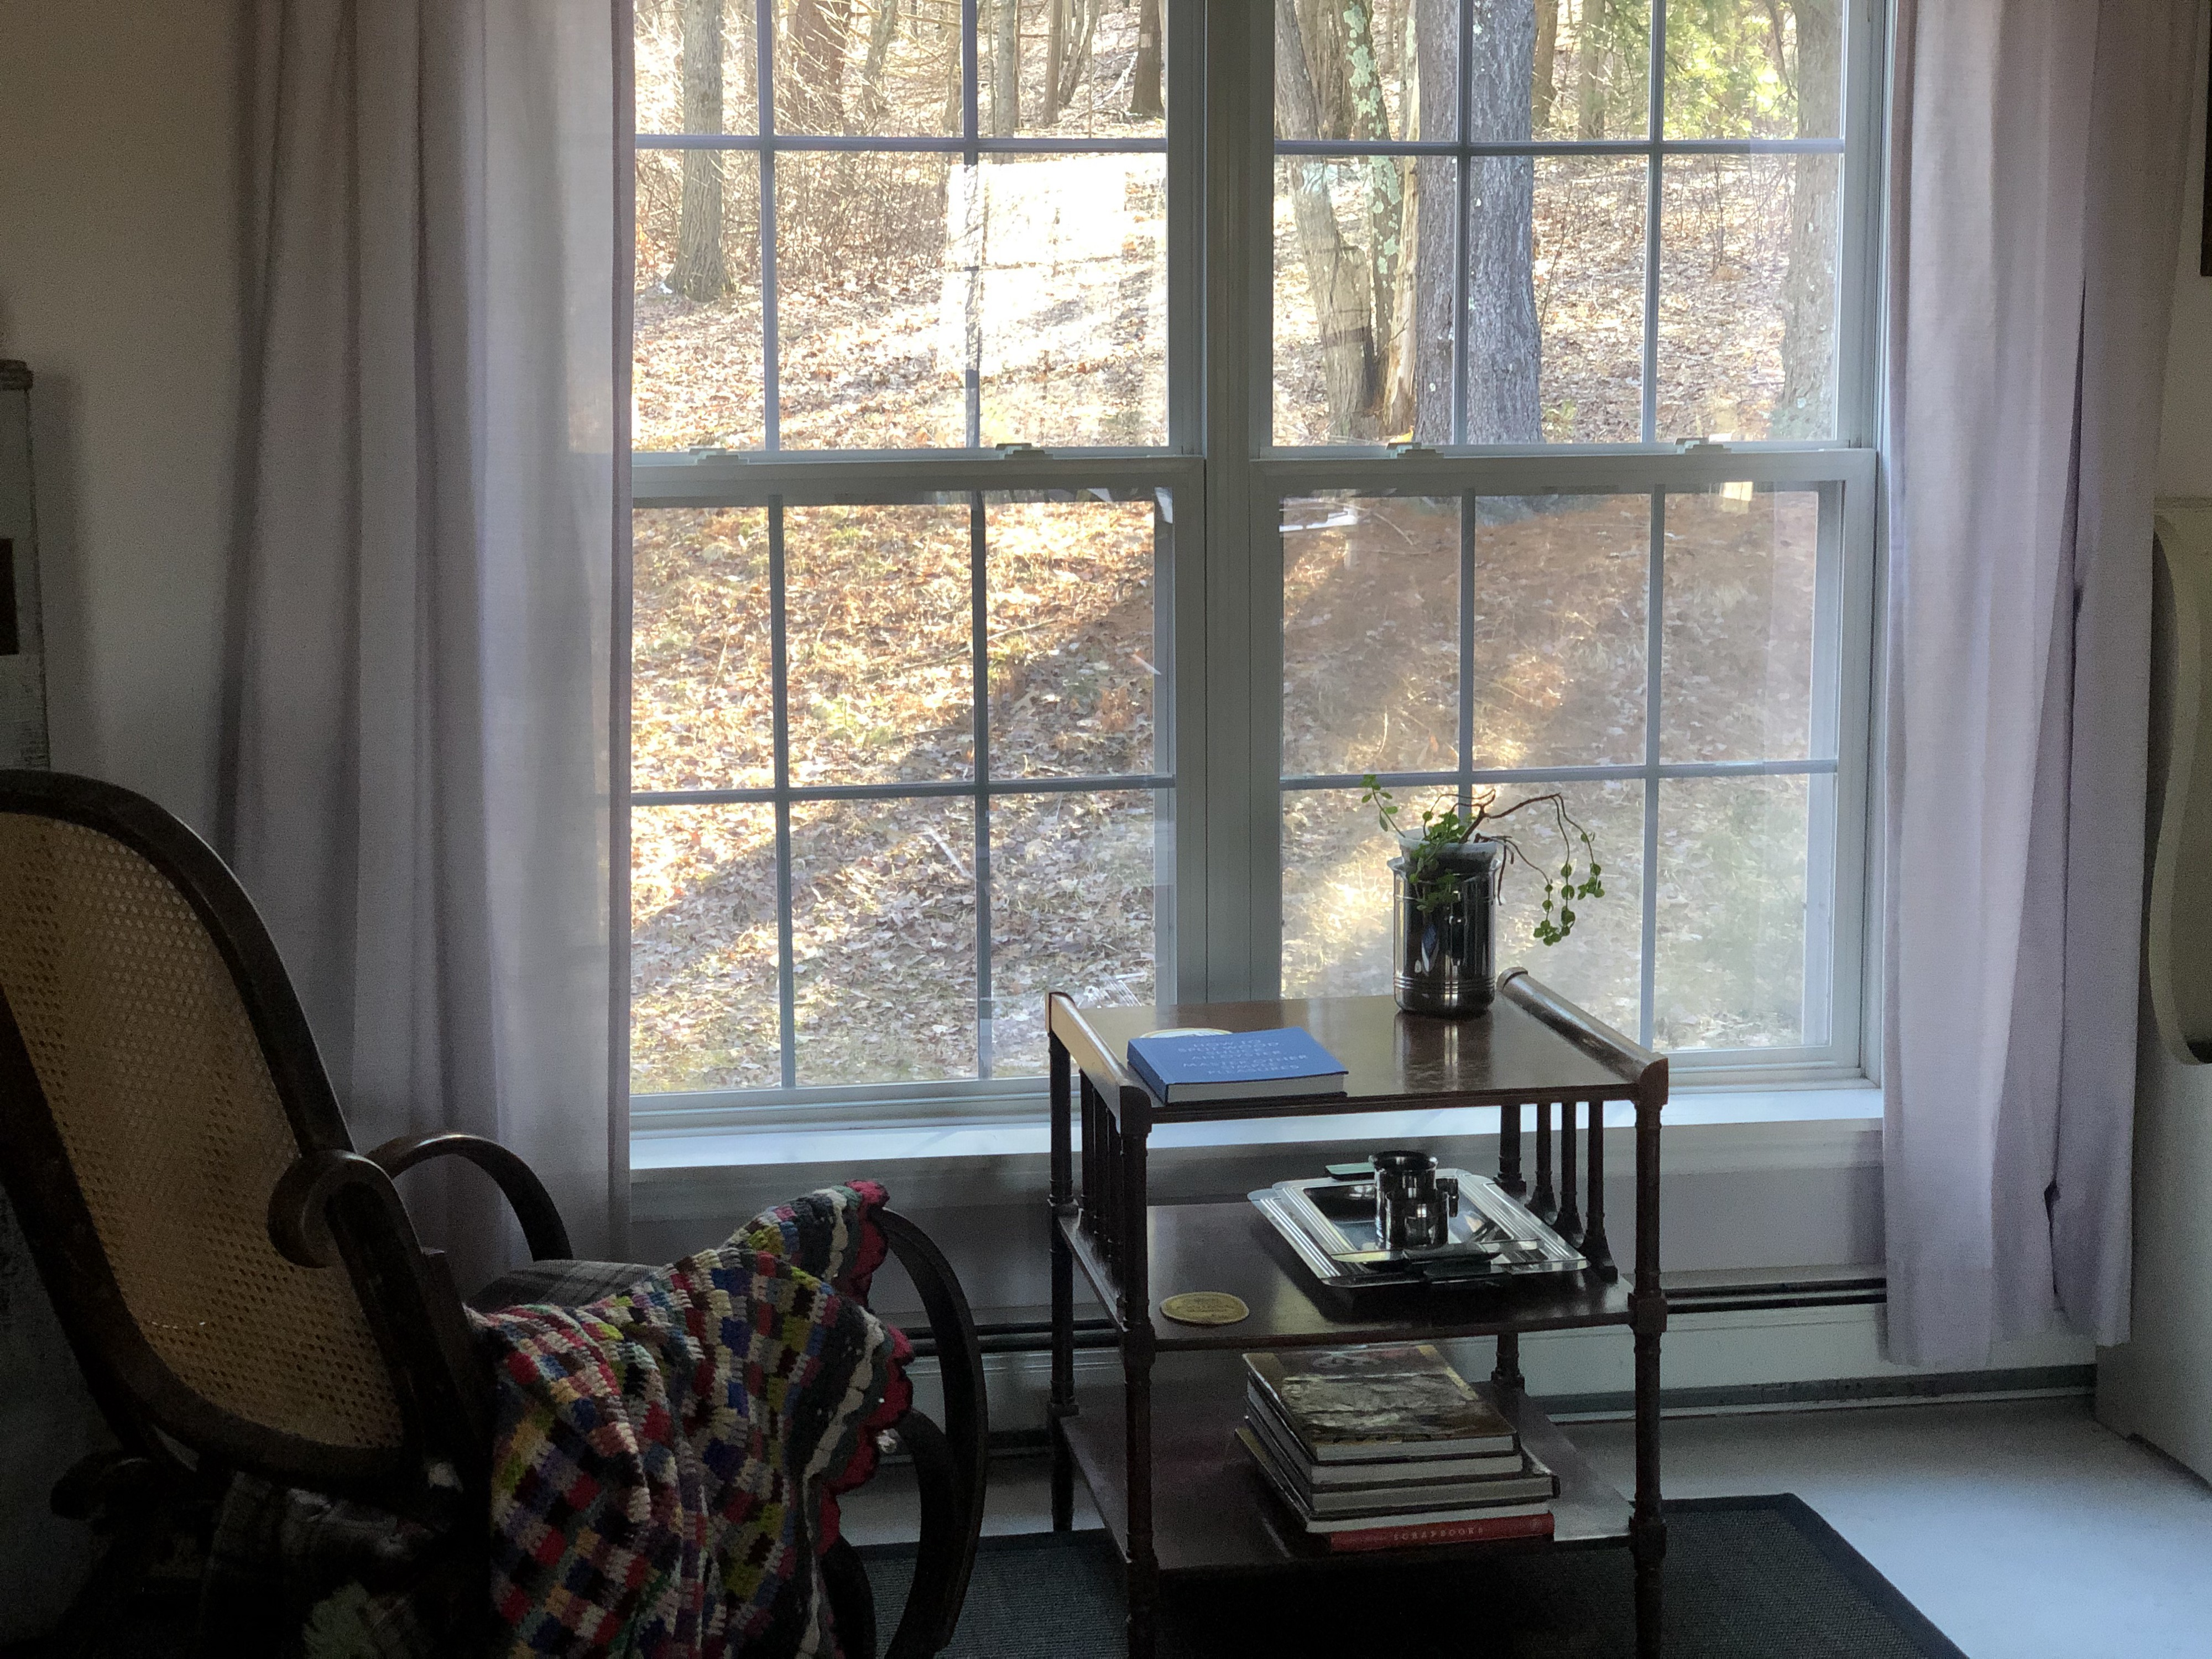 Chair by a window overlooking nature